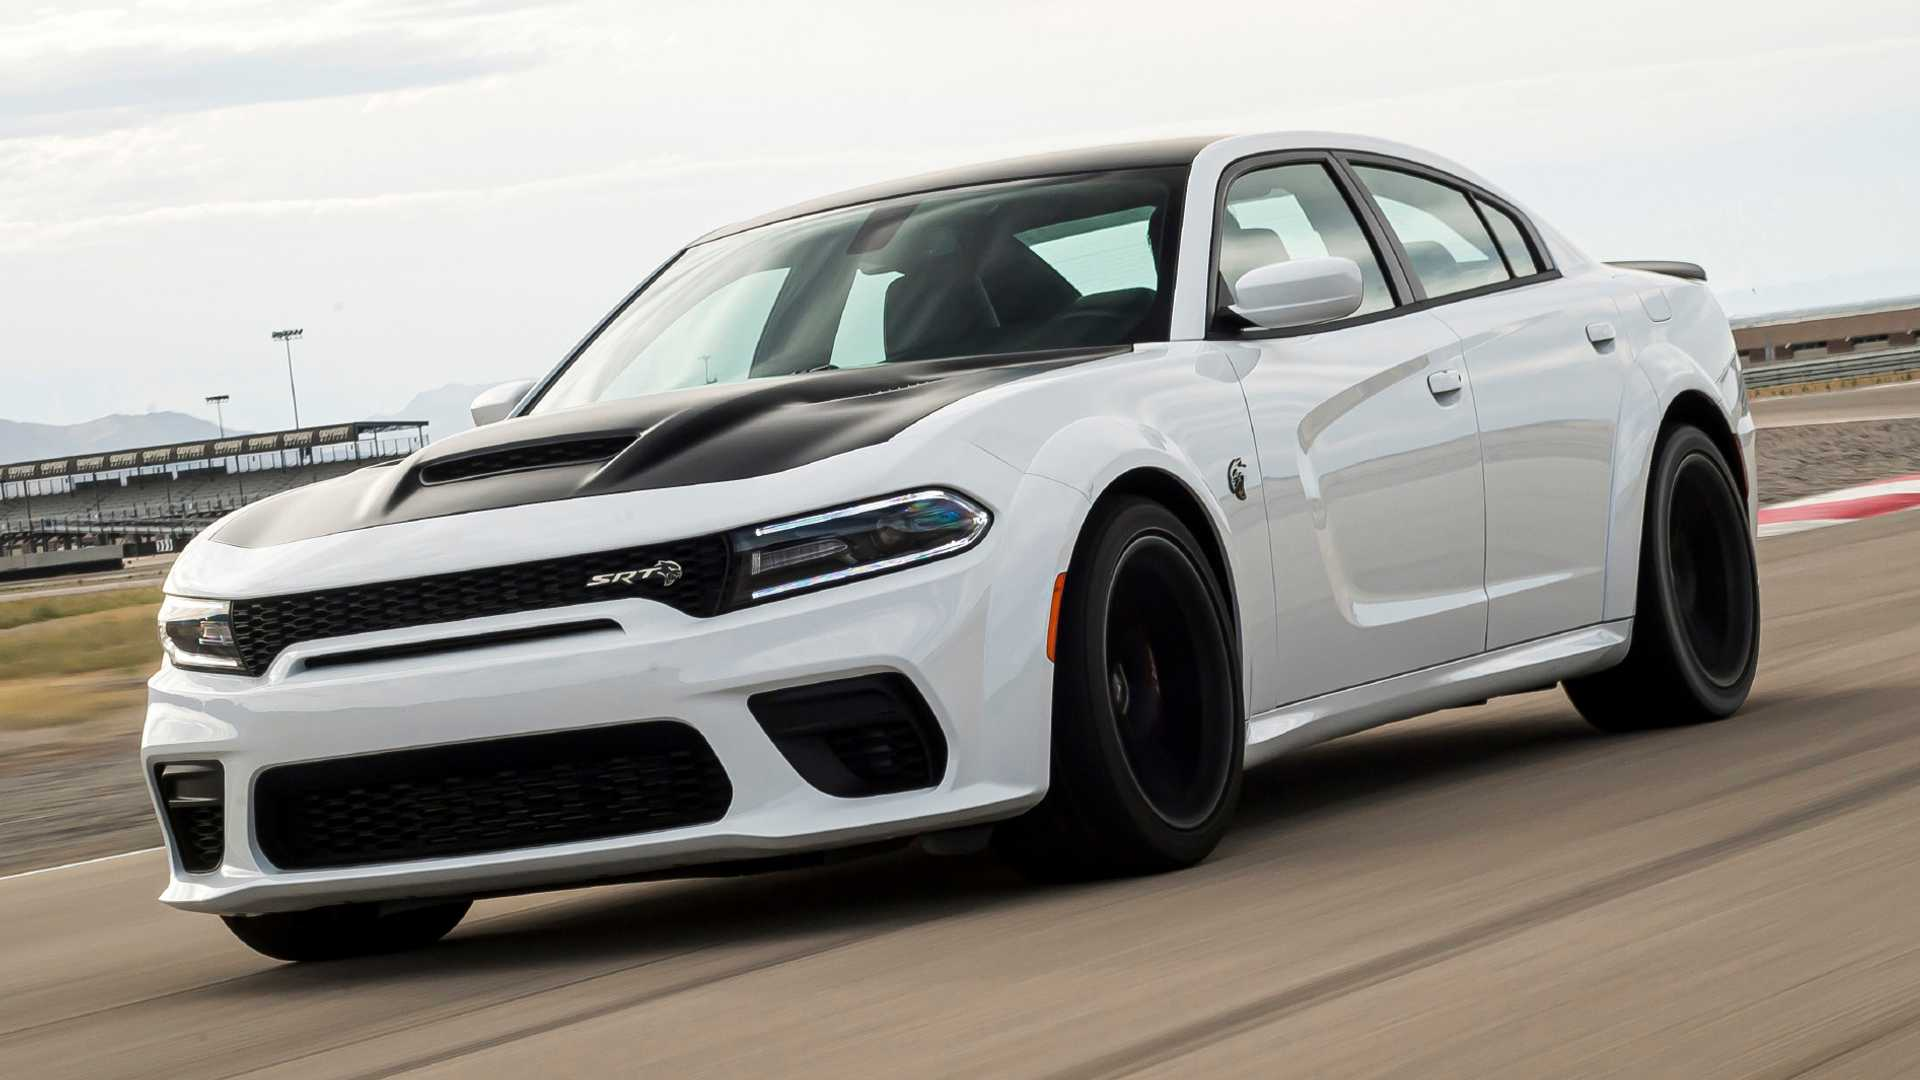 2021 Dodge Charger Srt Hellcat Redeye Costs Less Than 100 Per Hp